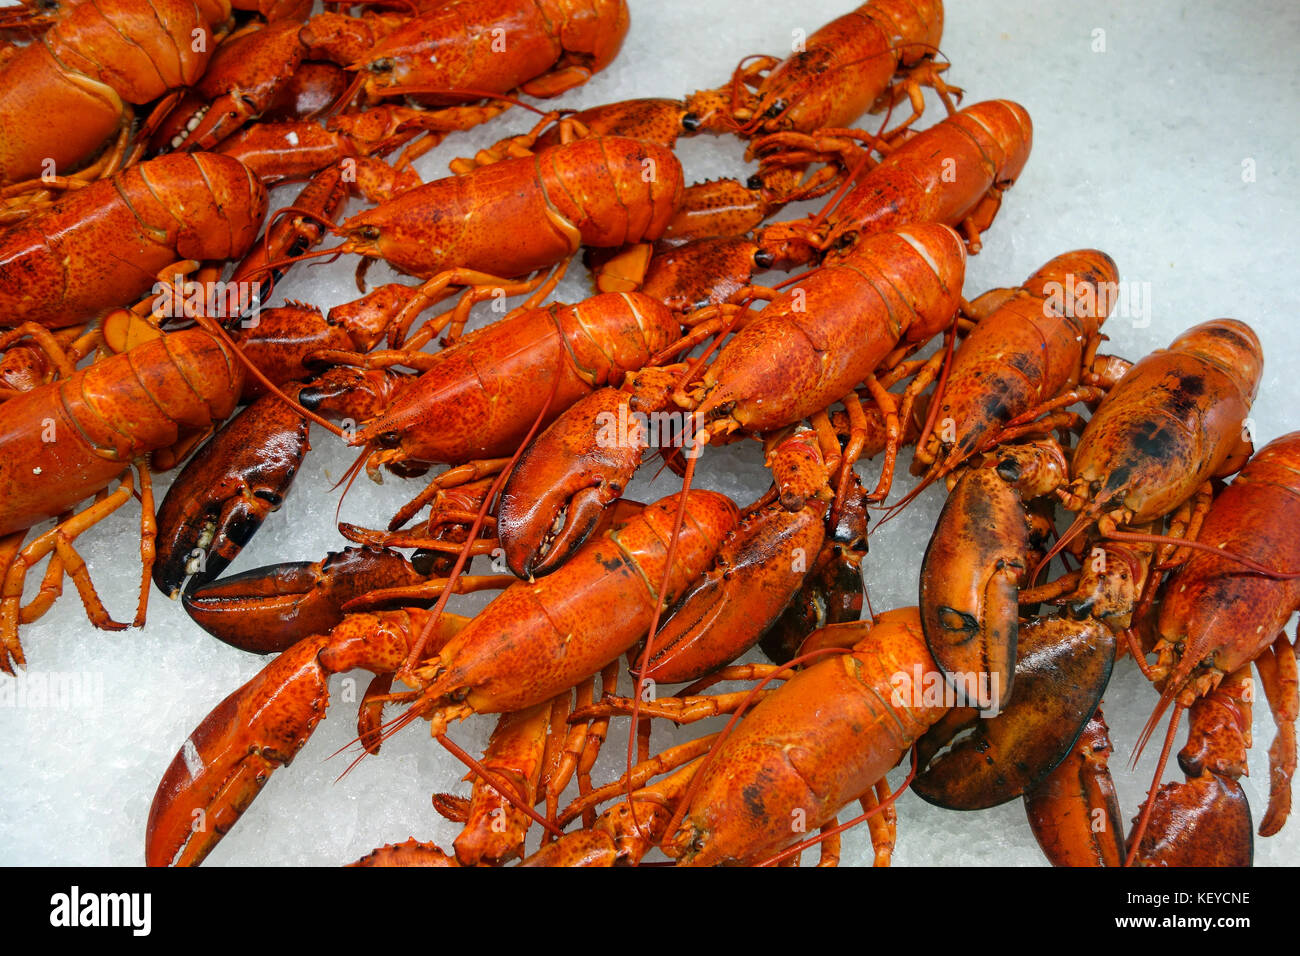 Lobsters on ice - Stock Image